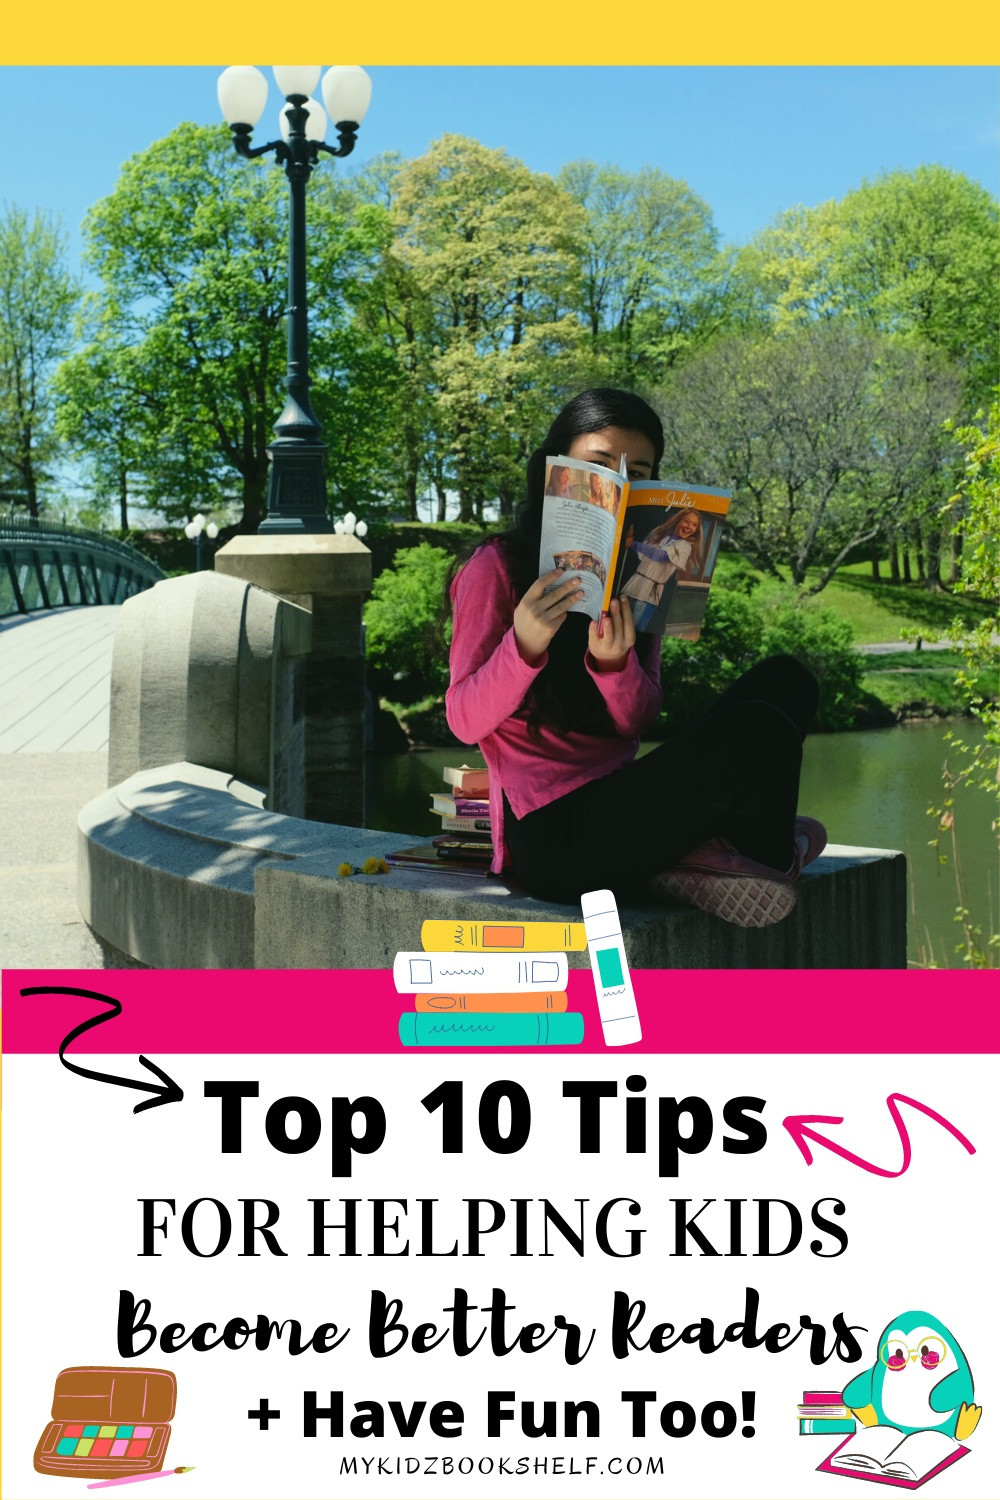 Top 10 tips for Helping Kids Become Better Readers Pinterest Pin shows girl reading a book